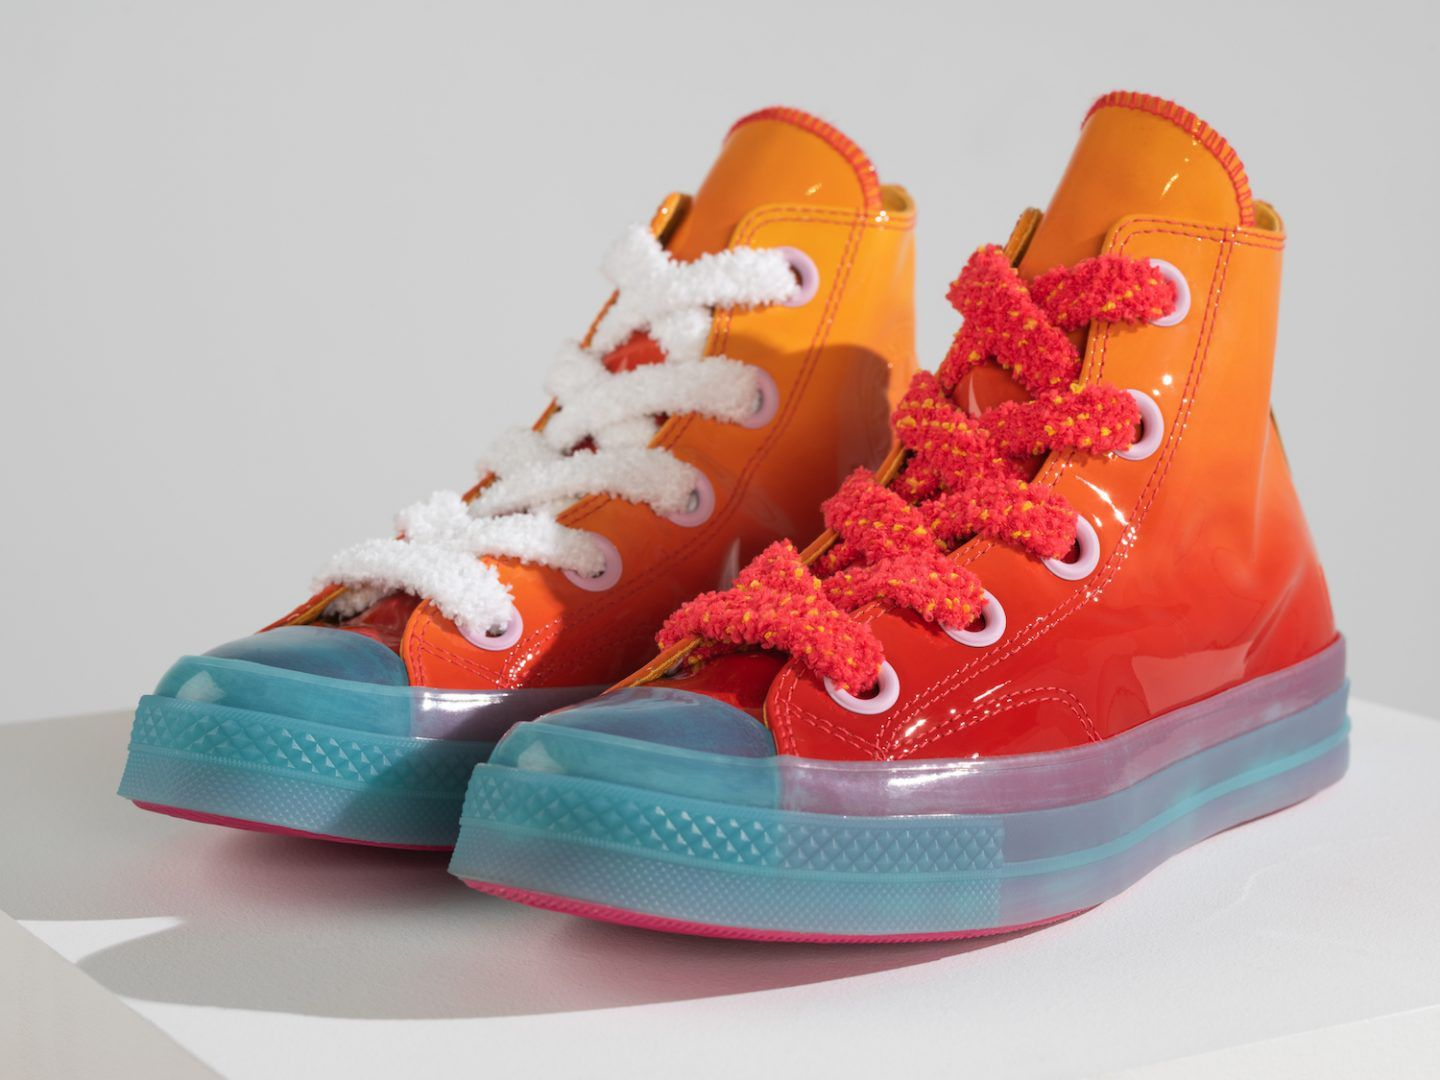 Converse x JW Anderson Chuck 70 Toy